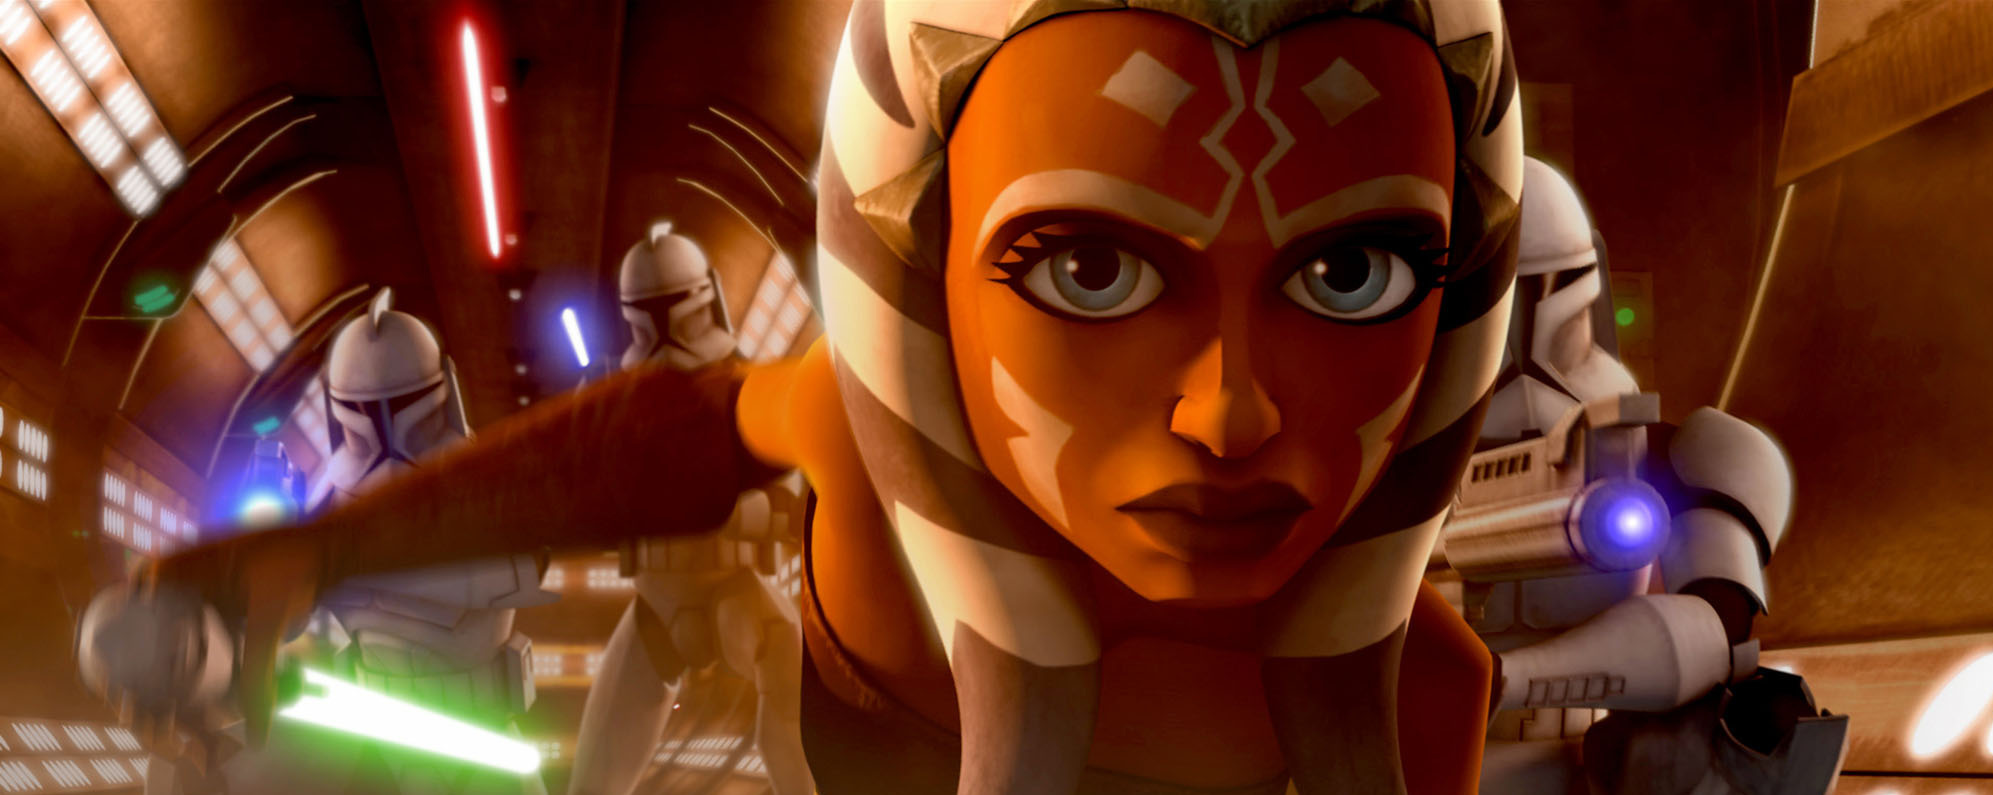 Star wars the clone wars cartoon young  nsfw chicks